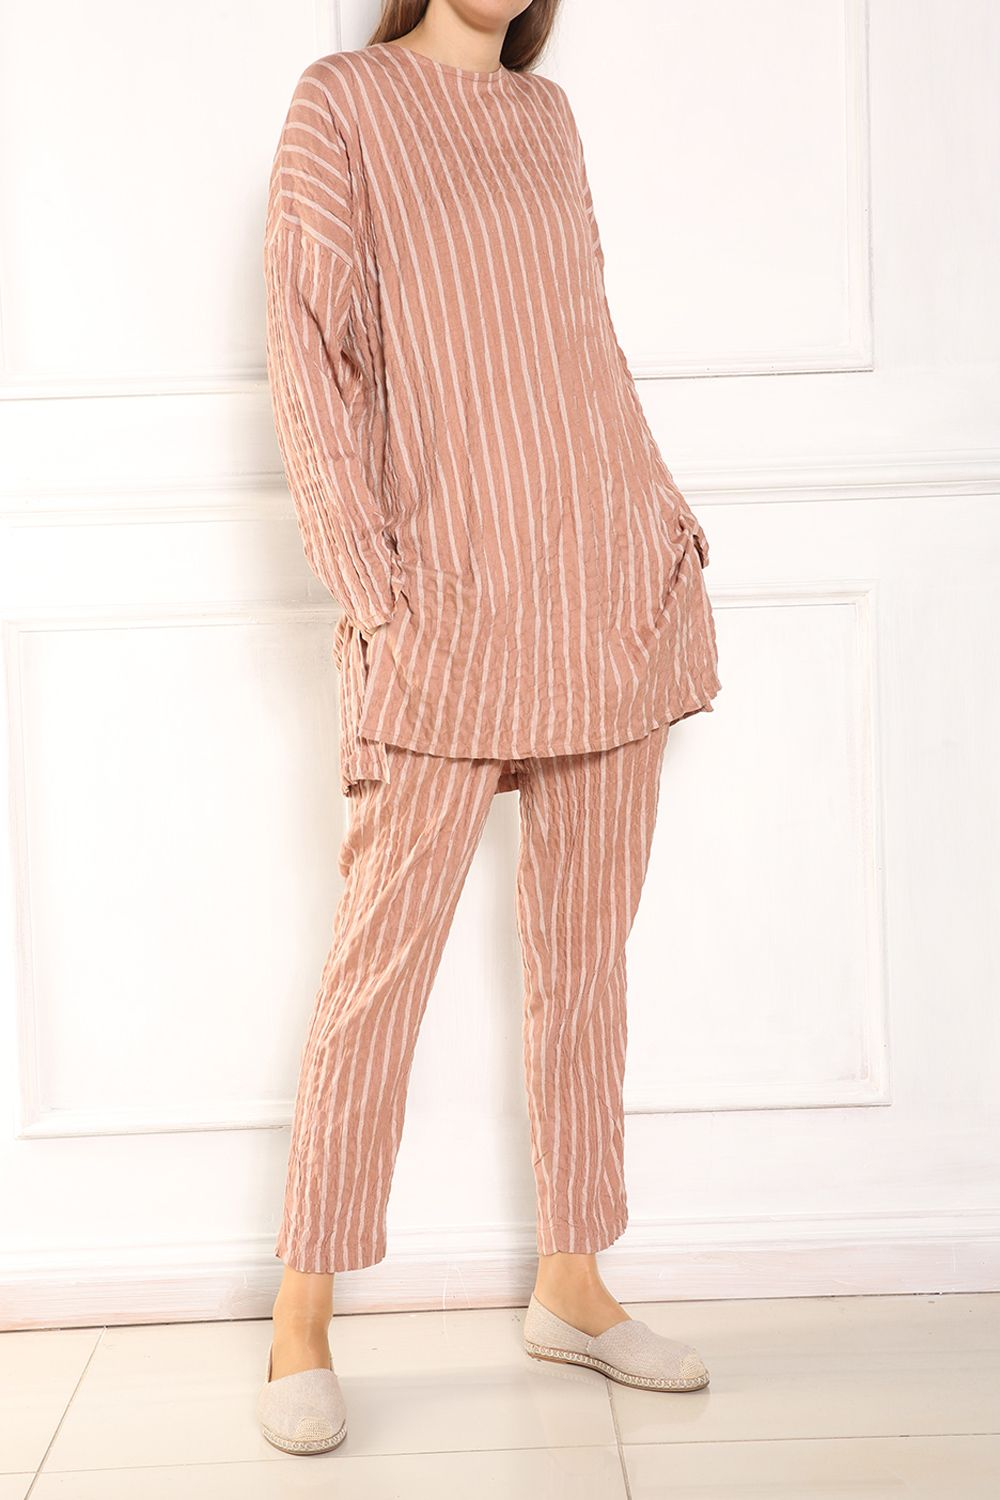 Striped Crew Neck Blouse and Pants Set